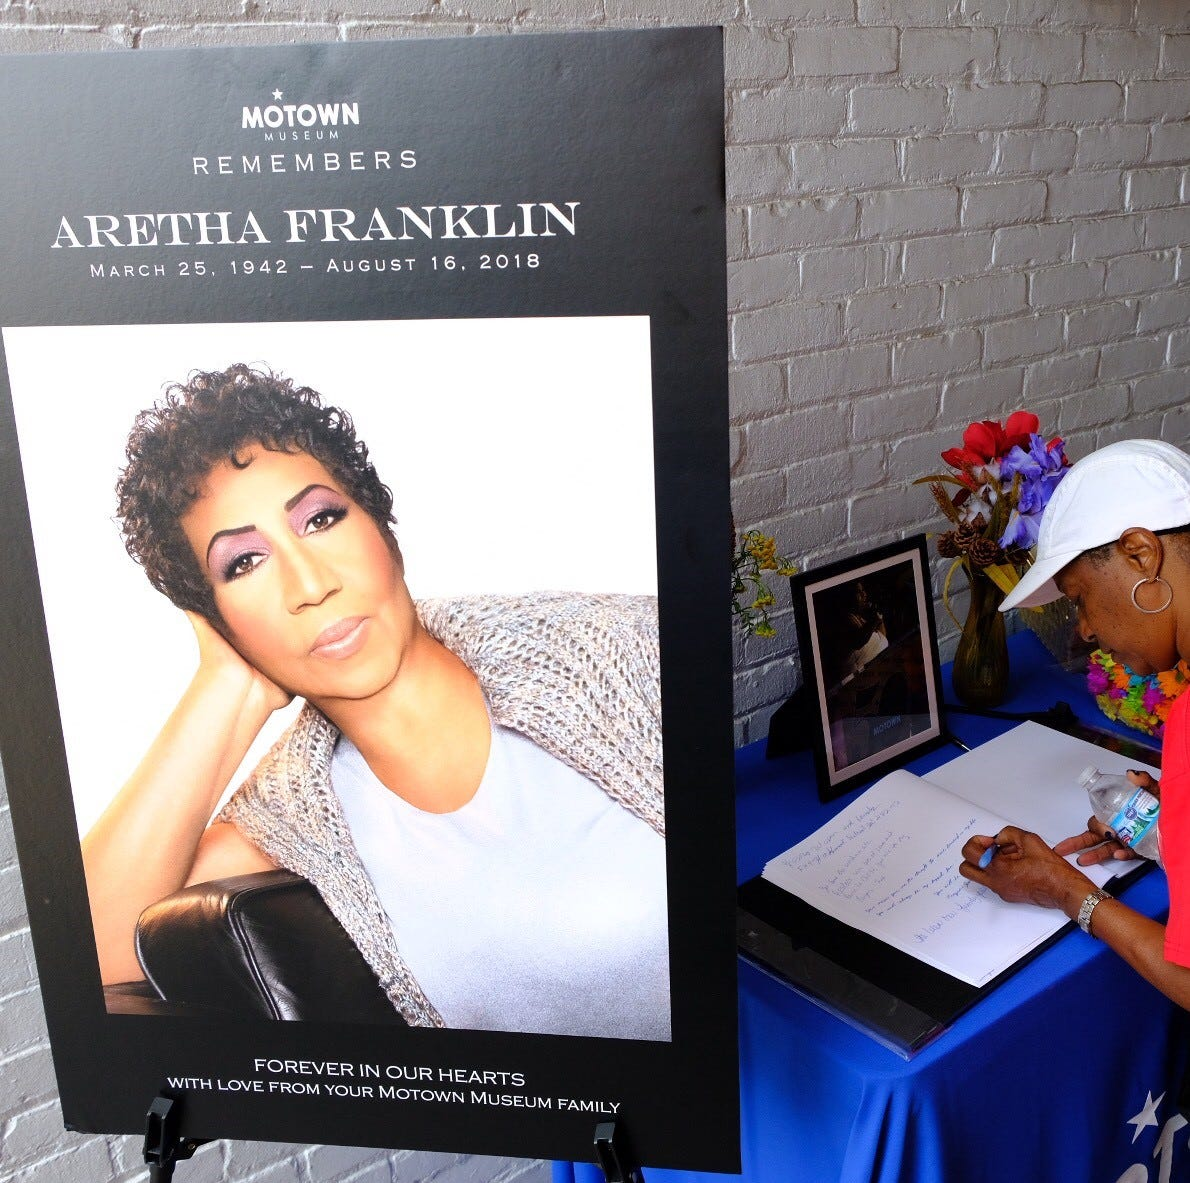 Motown Museum pays tribute to Aretha